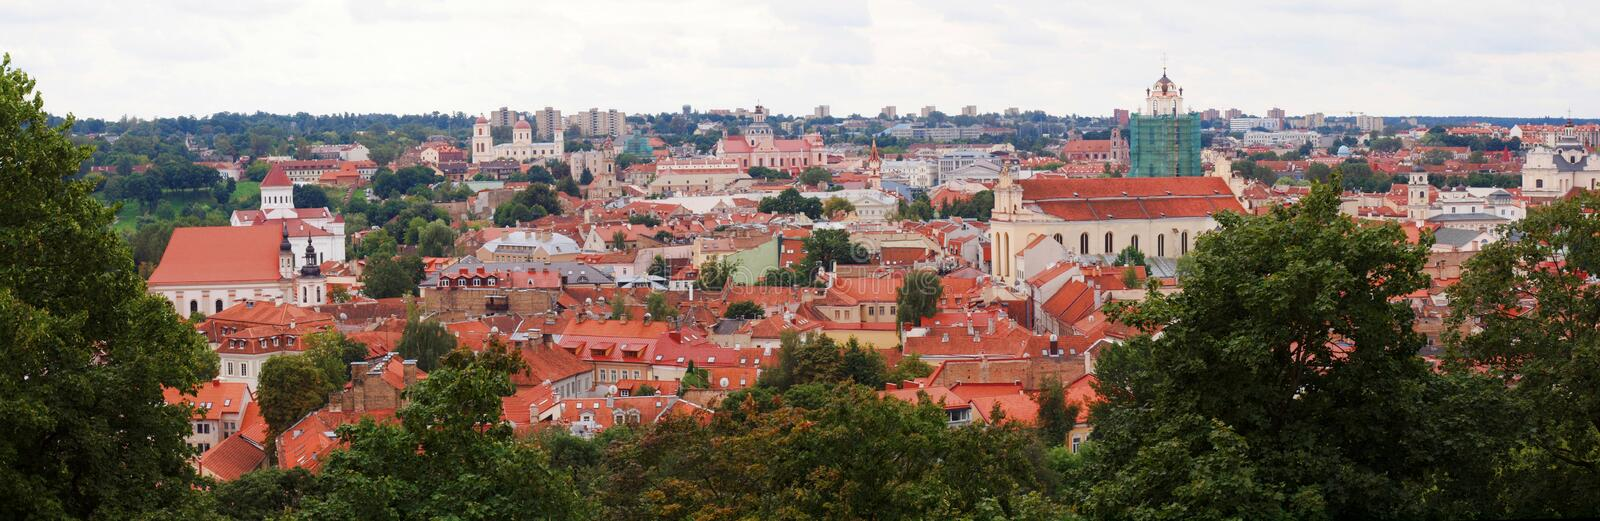 Roofs of the Vilnius city